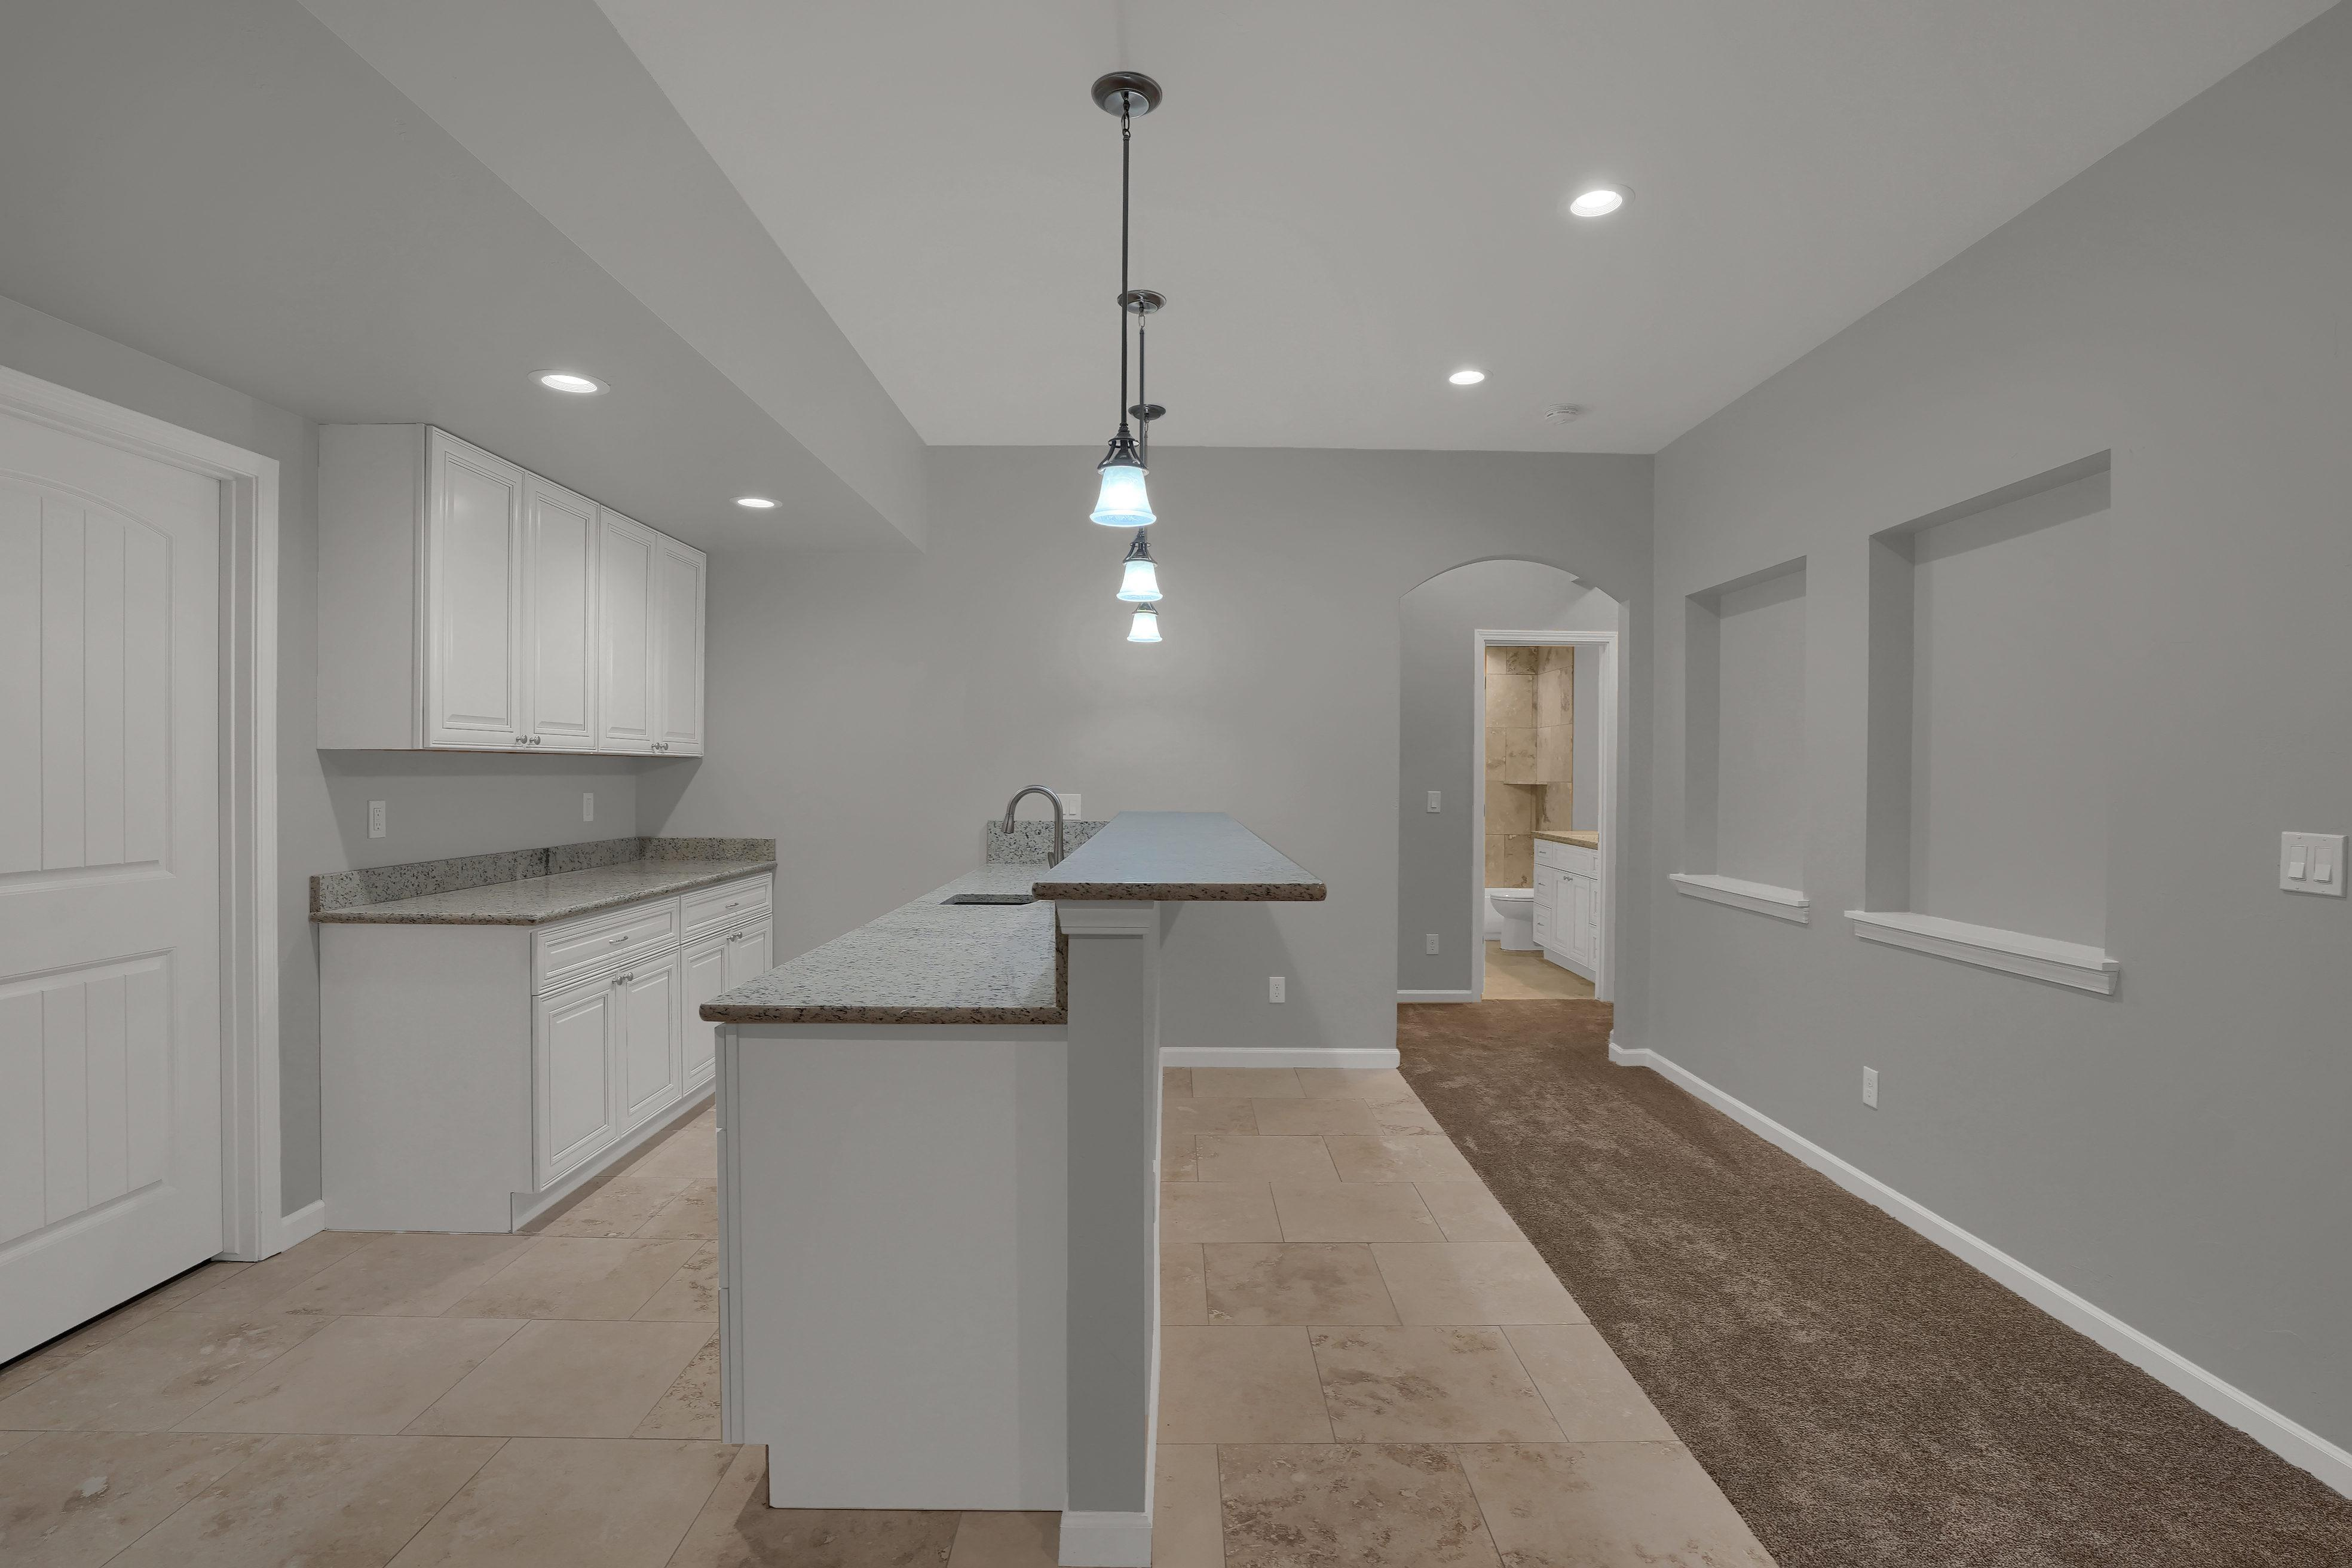 Kitchen featured in the Rosemount By Wildernest in Colorado Springs, CO